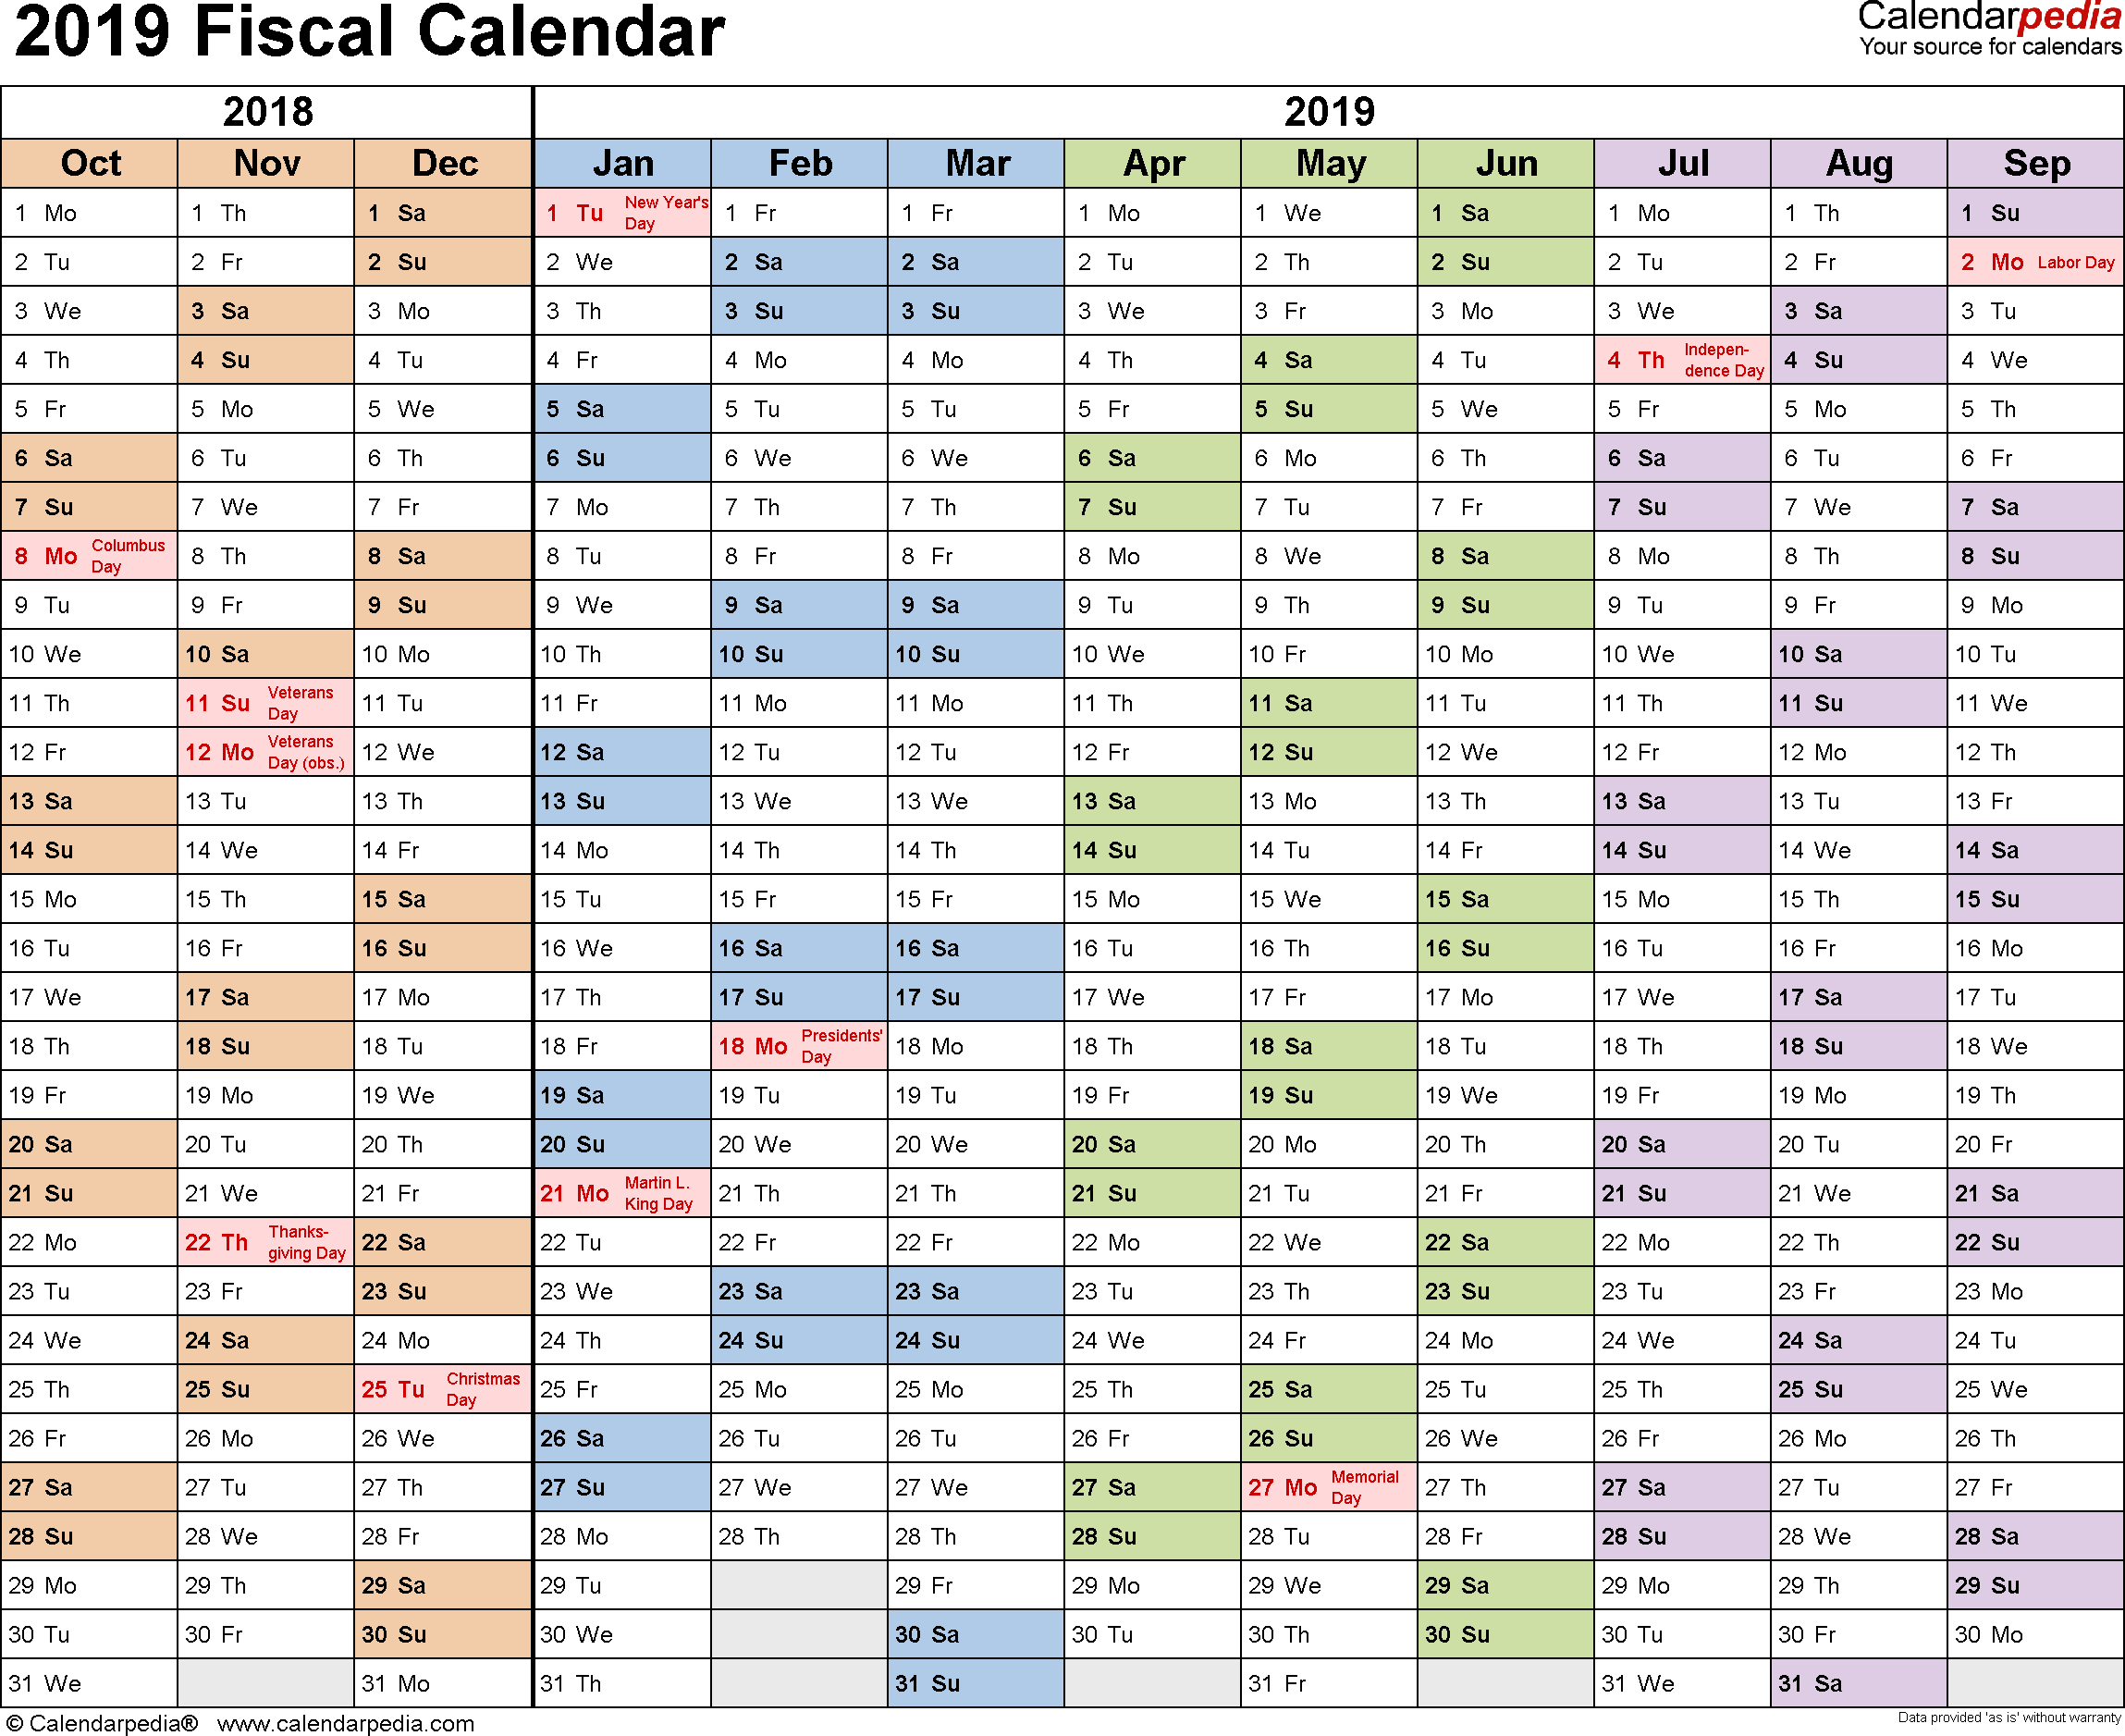 Calendar Of Year 2019 With Fiscal Calendars As Free Printable Word Templates